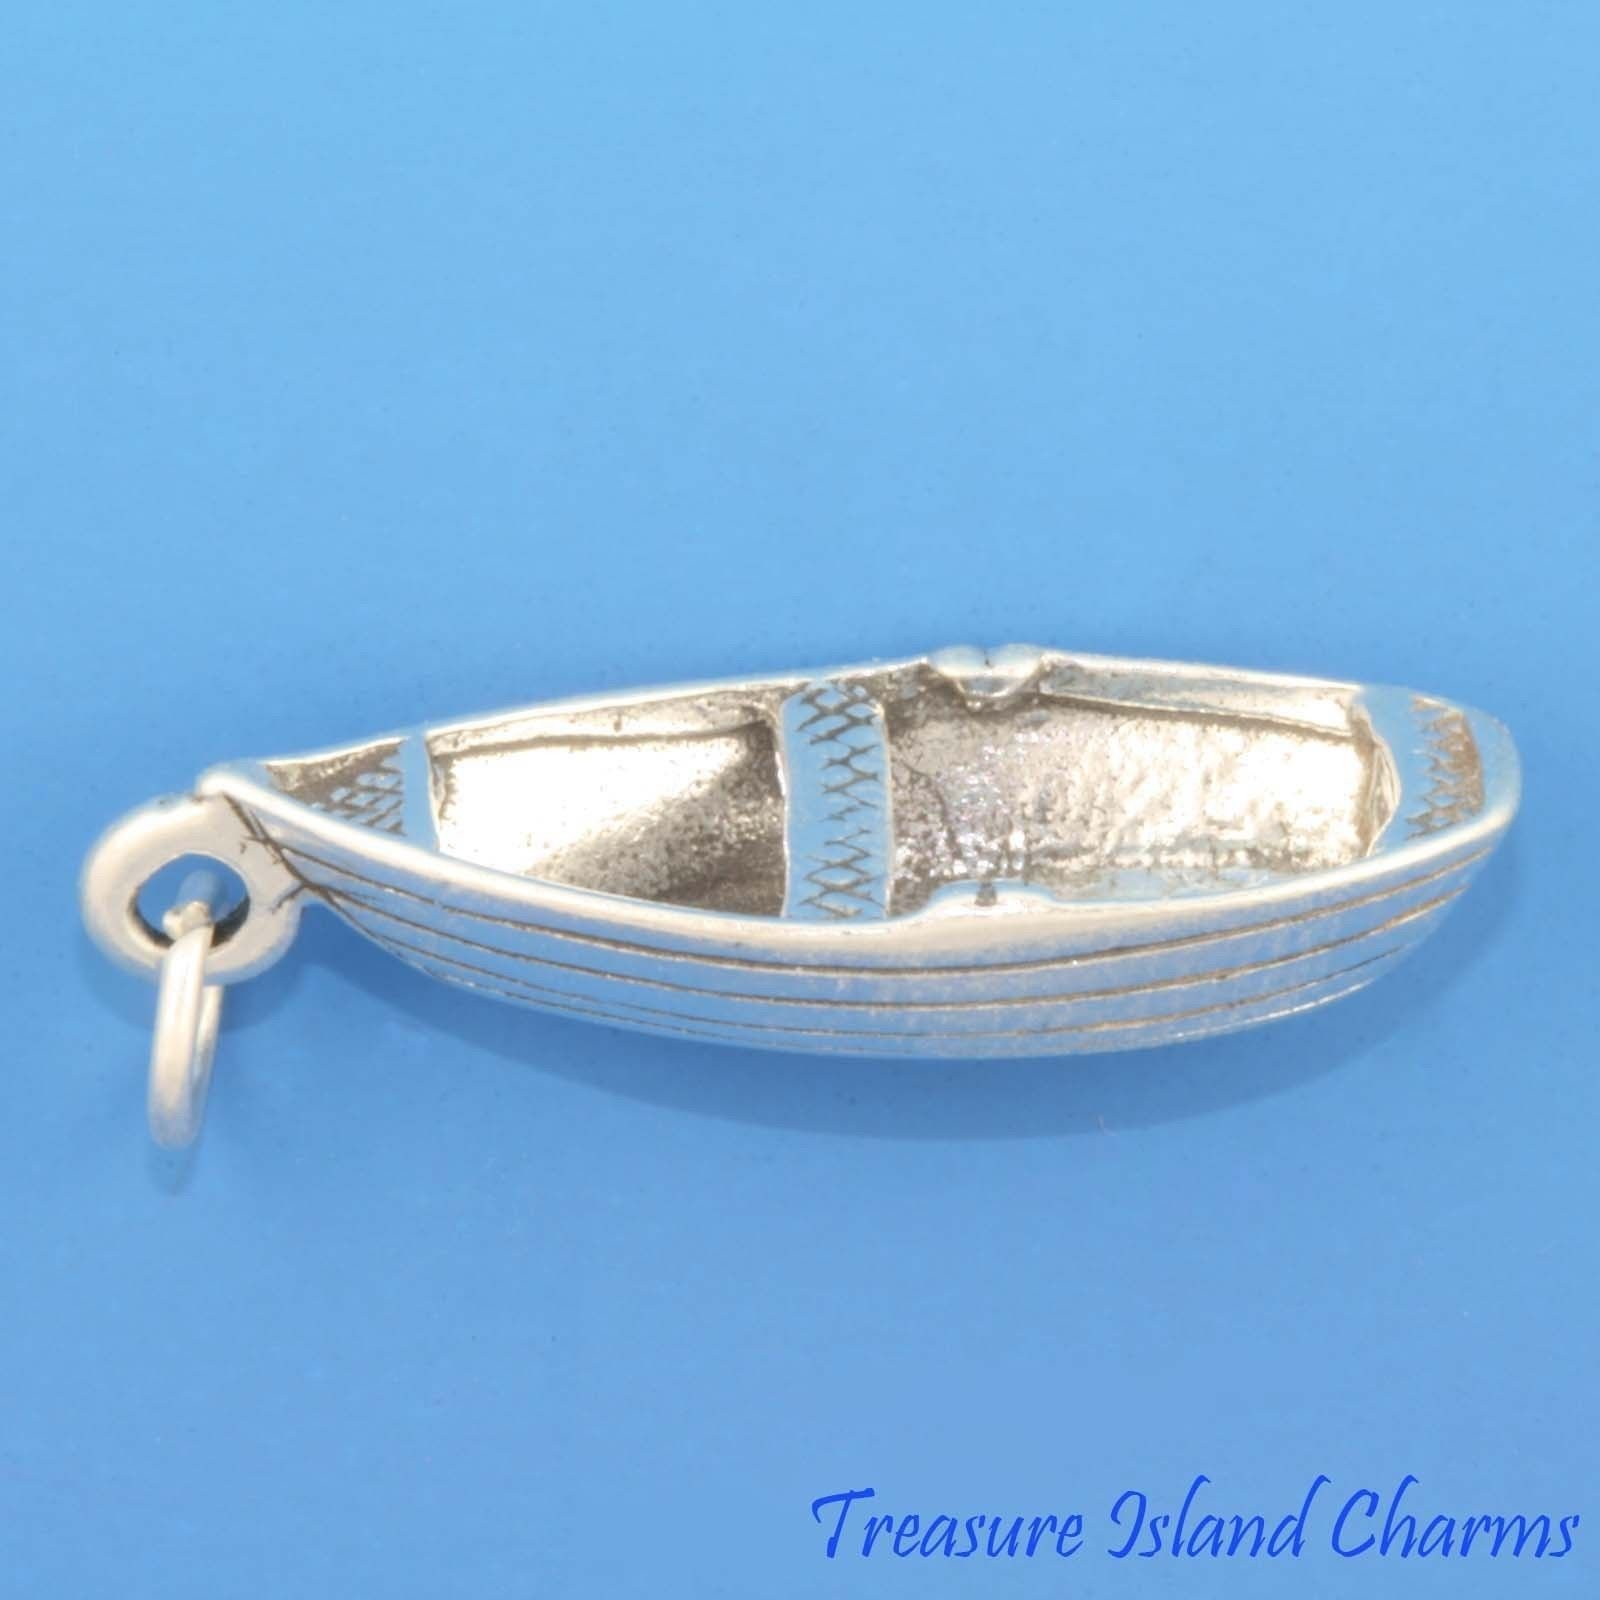 Row Boat Rowboat 3D .925 Solid Sterling Silver Charm Pendant Fishing Lake Beach Ideal Gifts, Pendant, Charms, DIY Crafting, Gift Set from Heart by Wholesale Charms by Wholesale Charms